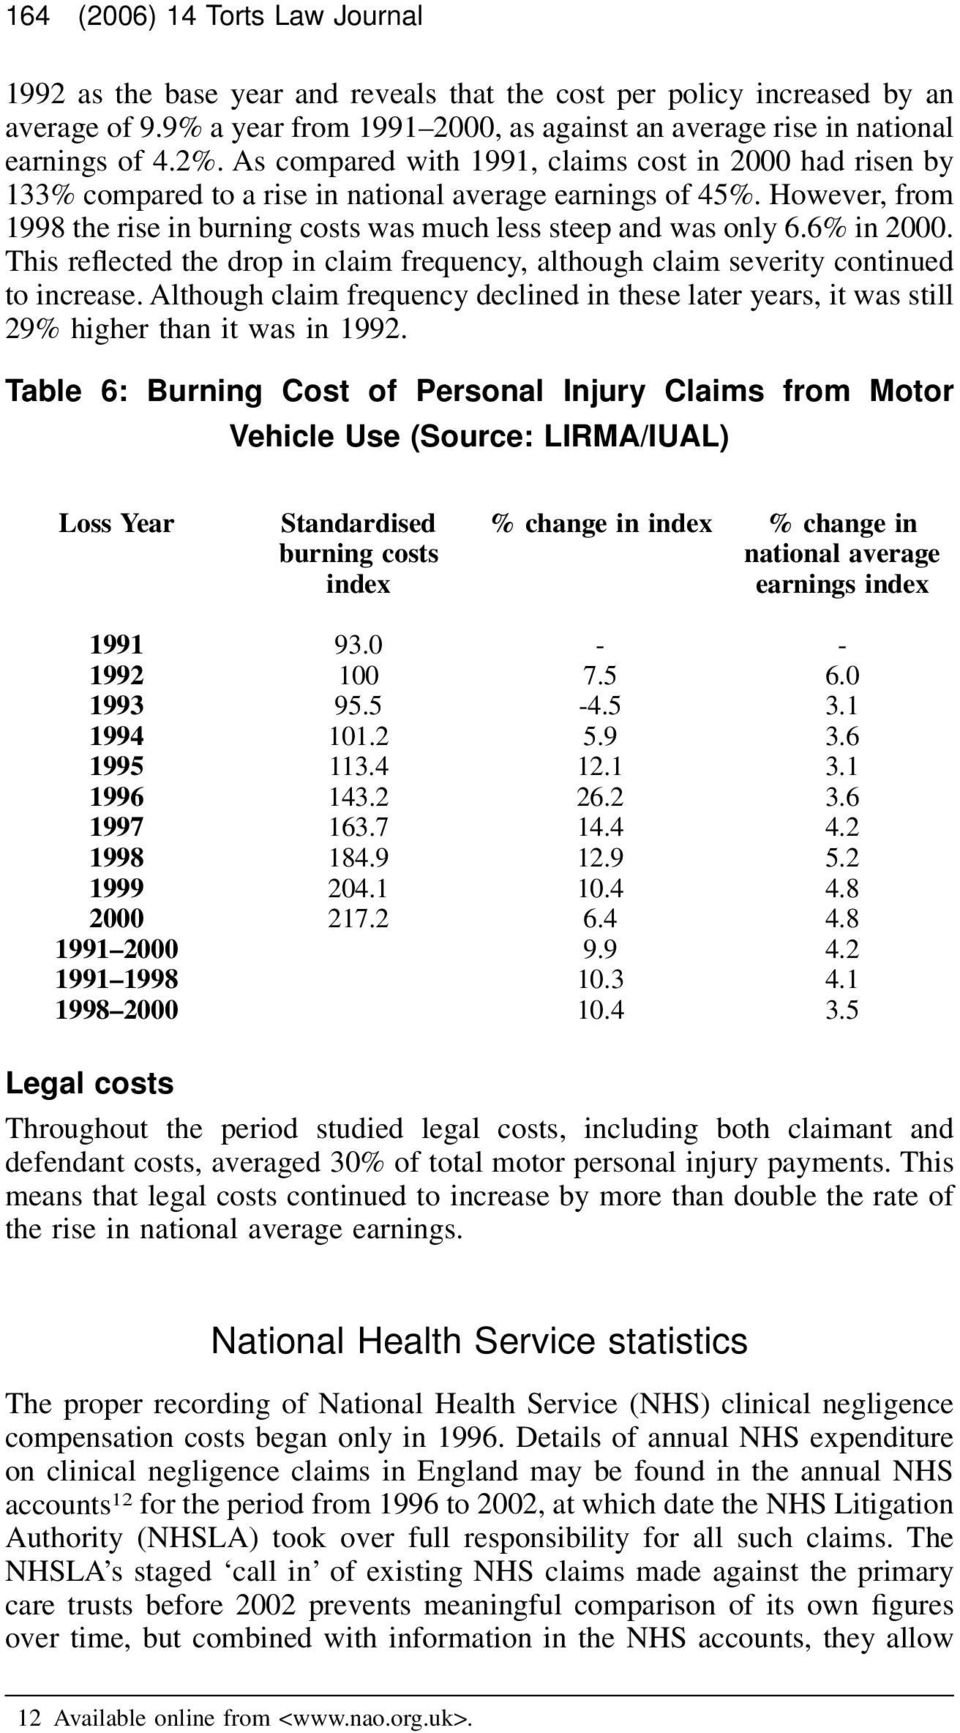 However, from 1998 the rise in burning costs was much less steep and was only 6.6% in 2000. This reflected the drop in claim frequency, although claim severity continued to increase.